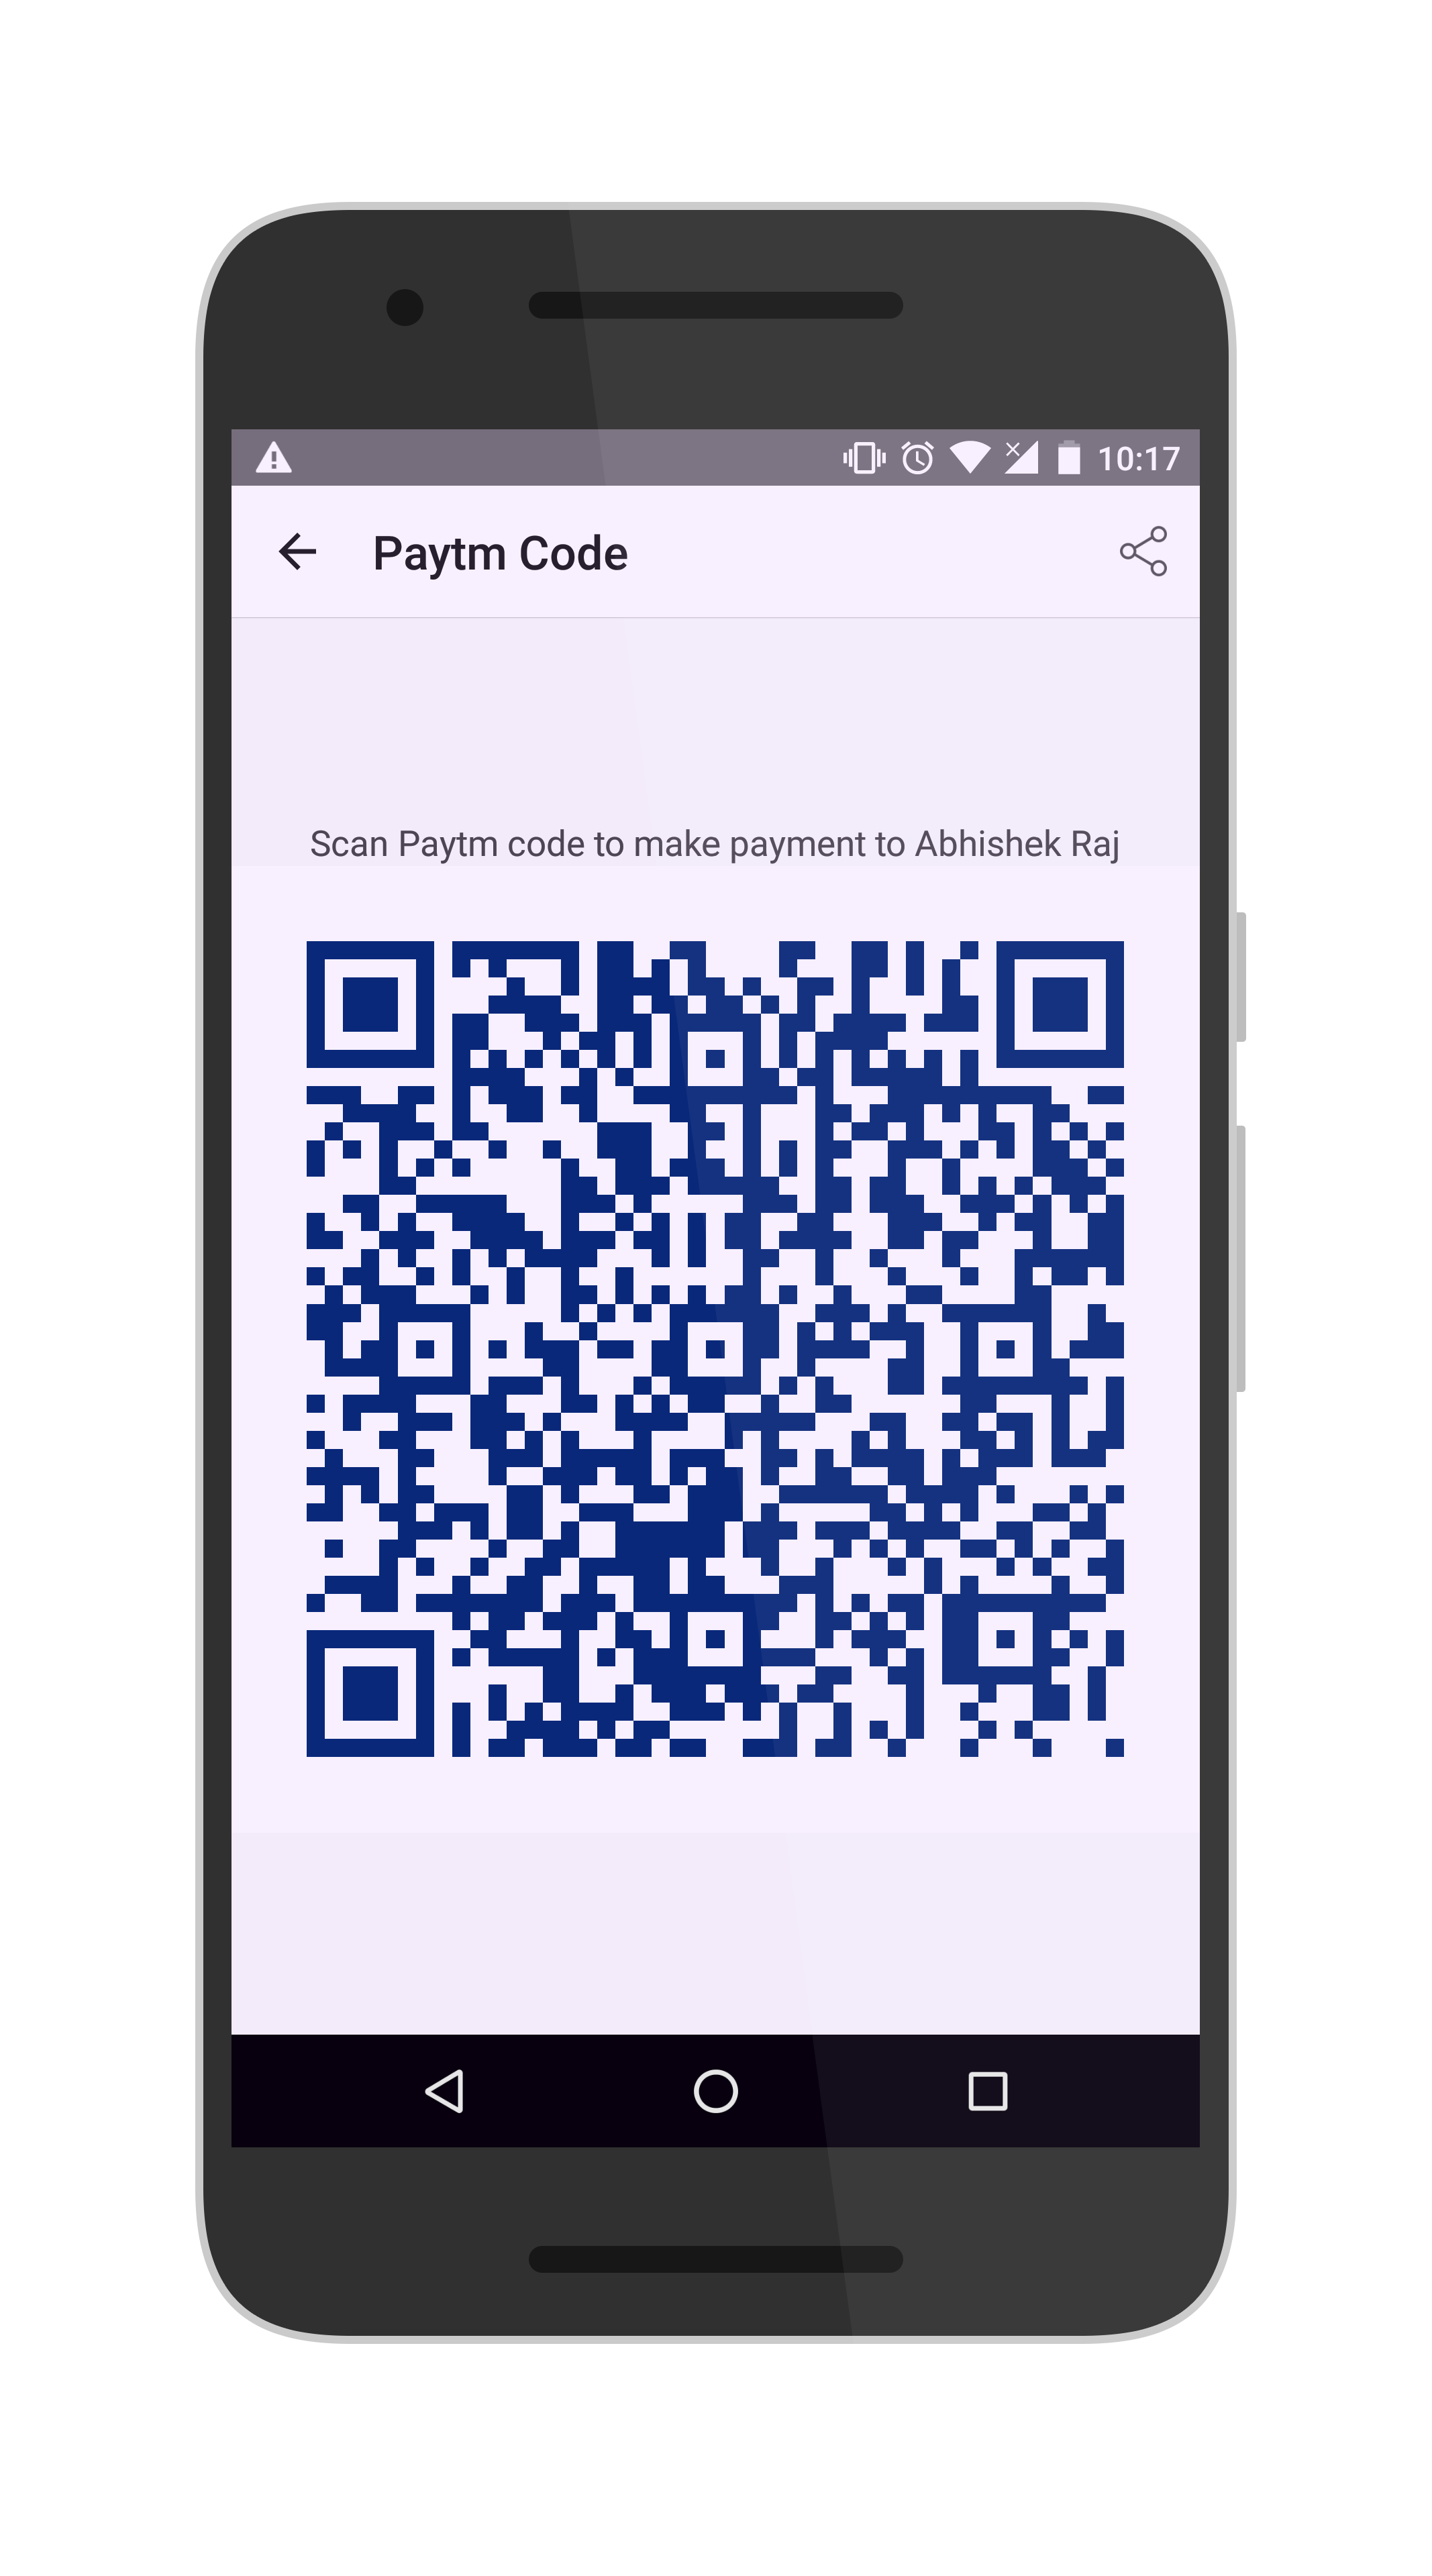 QR code in mobile payments